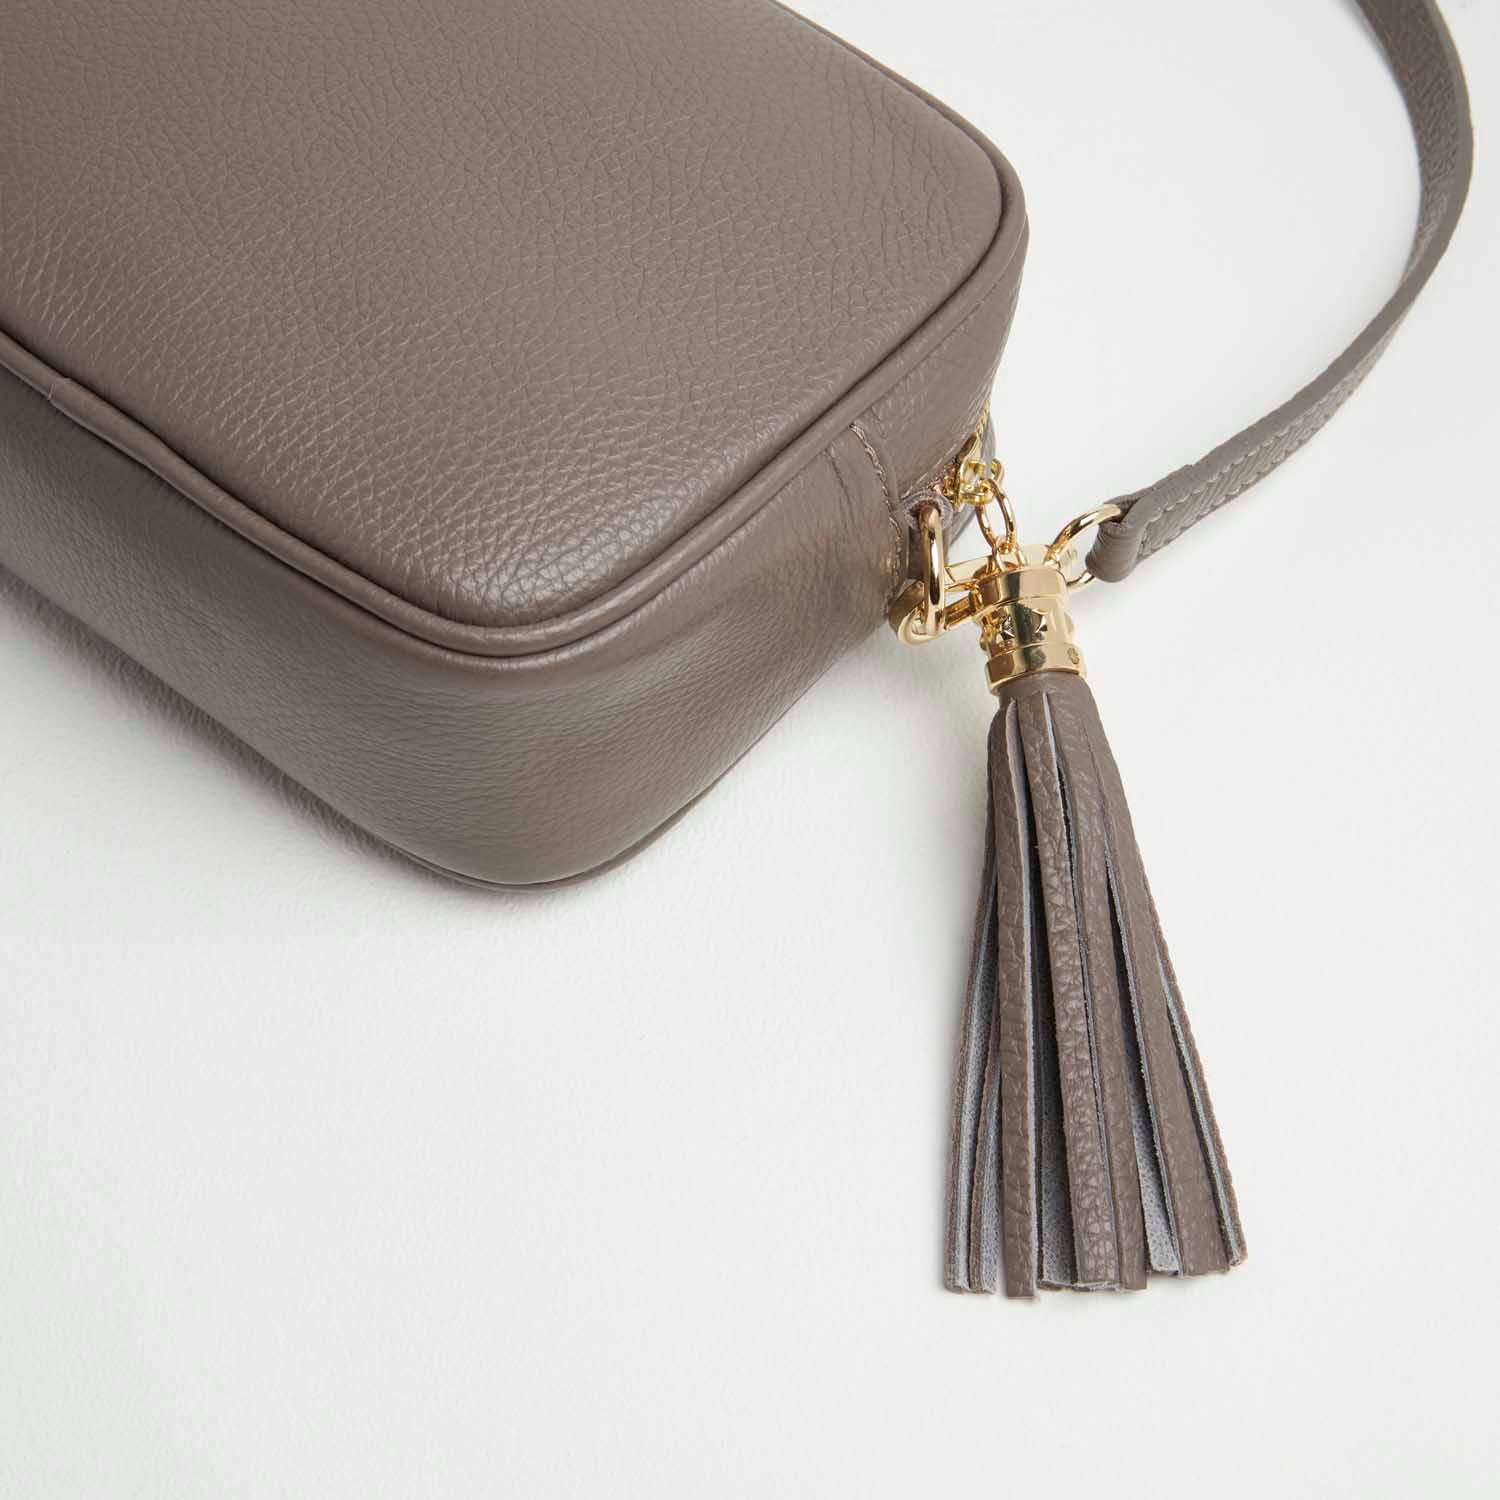 Verona Crossbody Tassel Cinder Bag with Pastel Strap